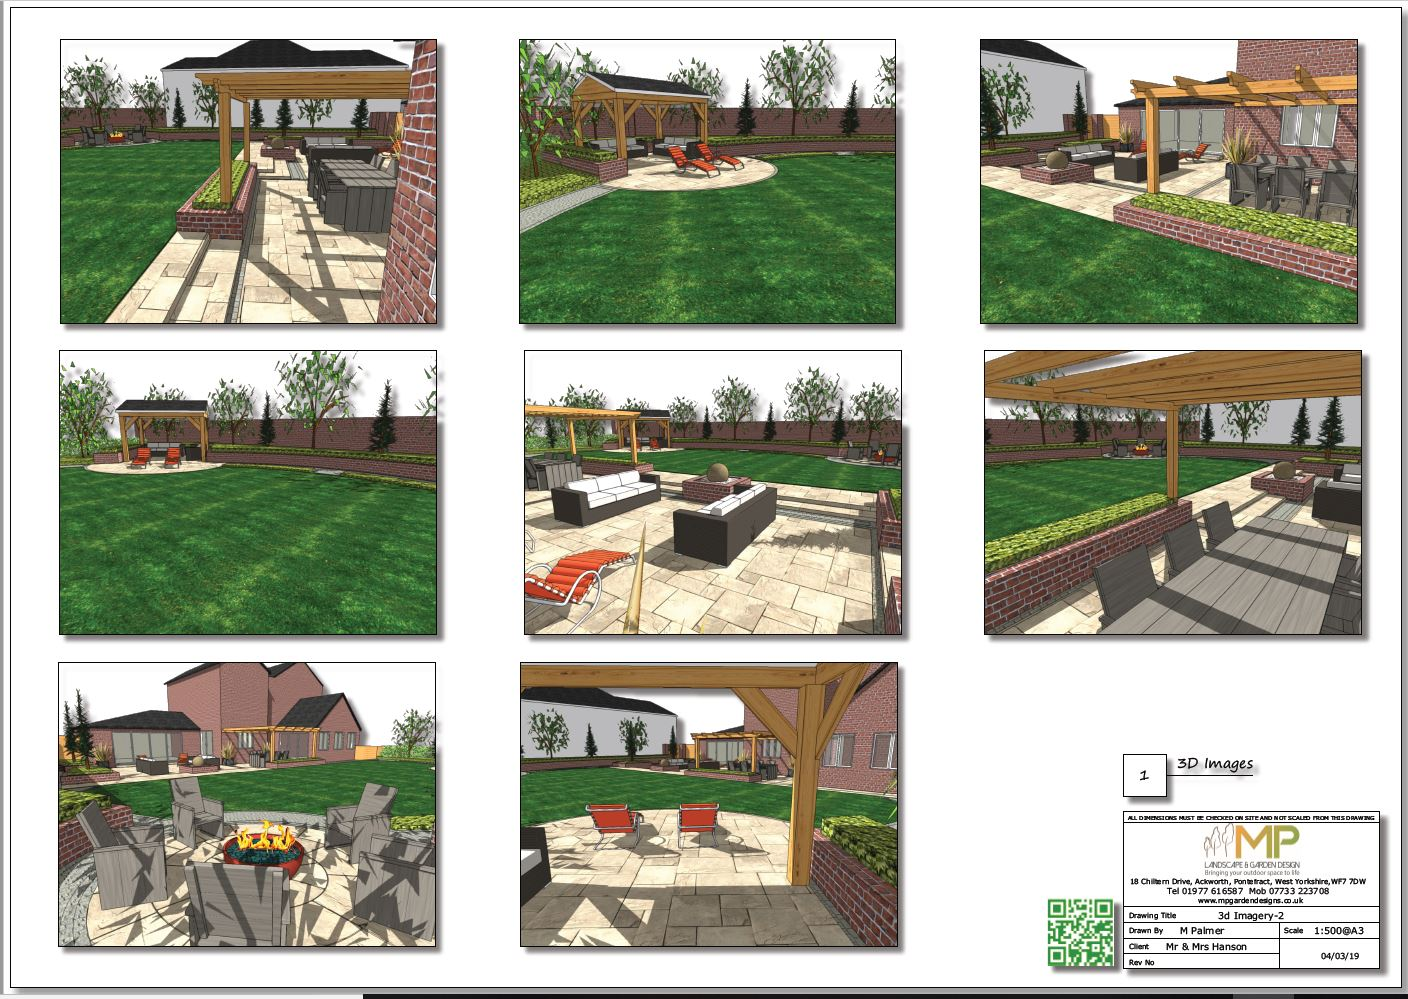 Concept plans-2 for a property in Wakefield, West Yorkshire.